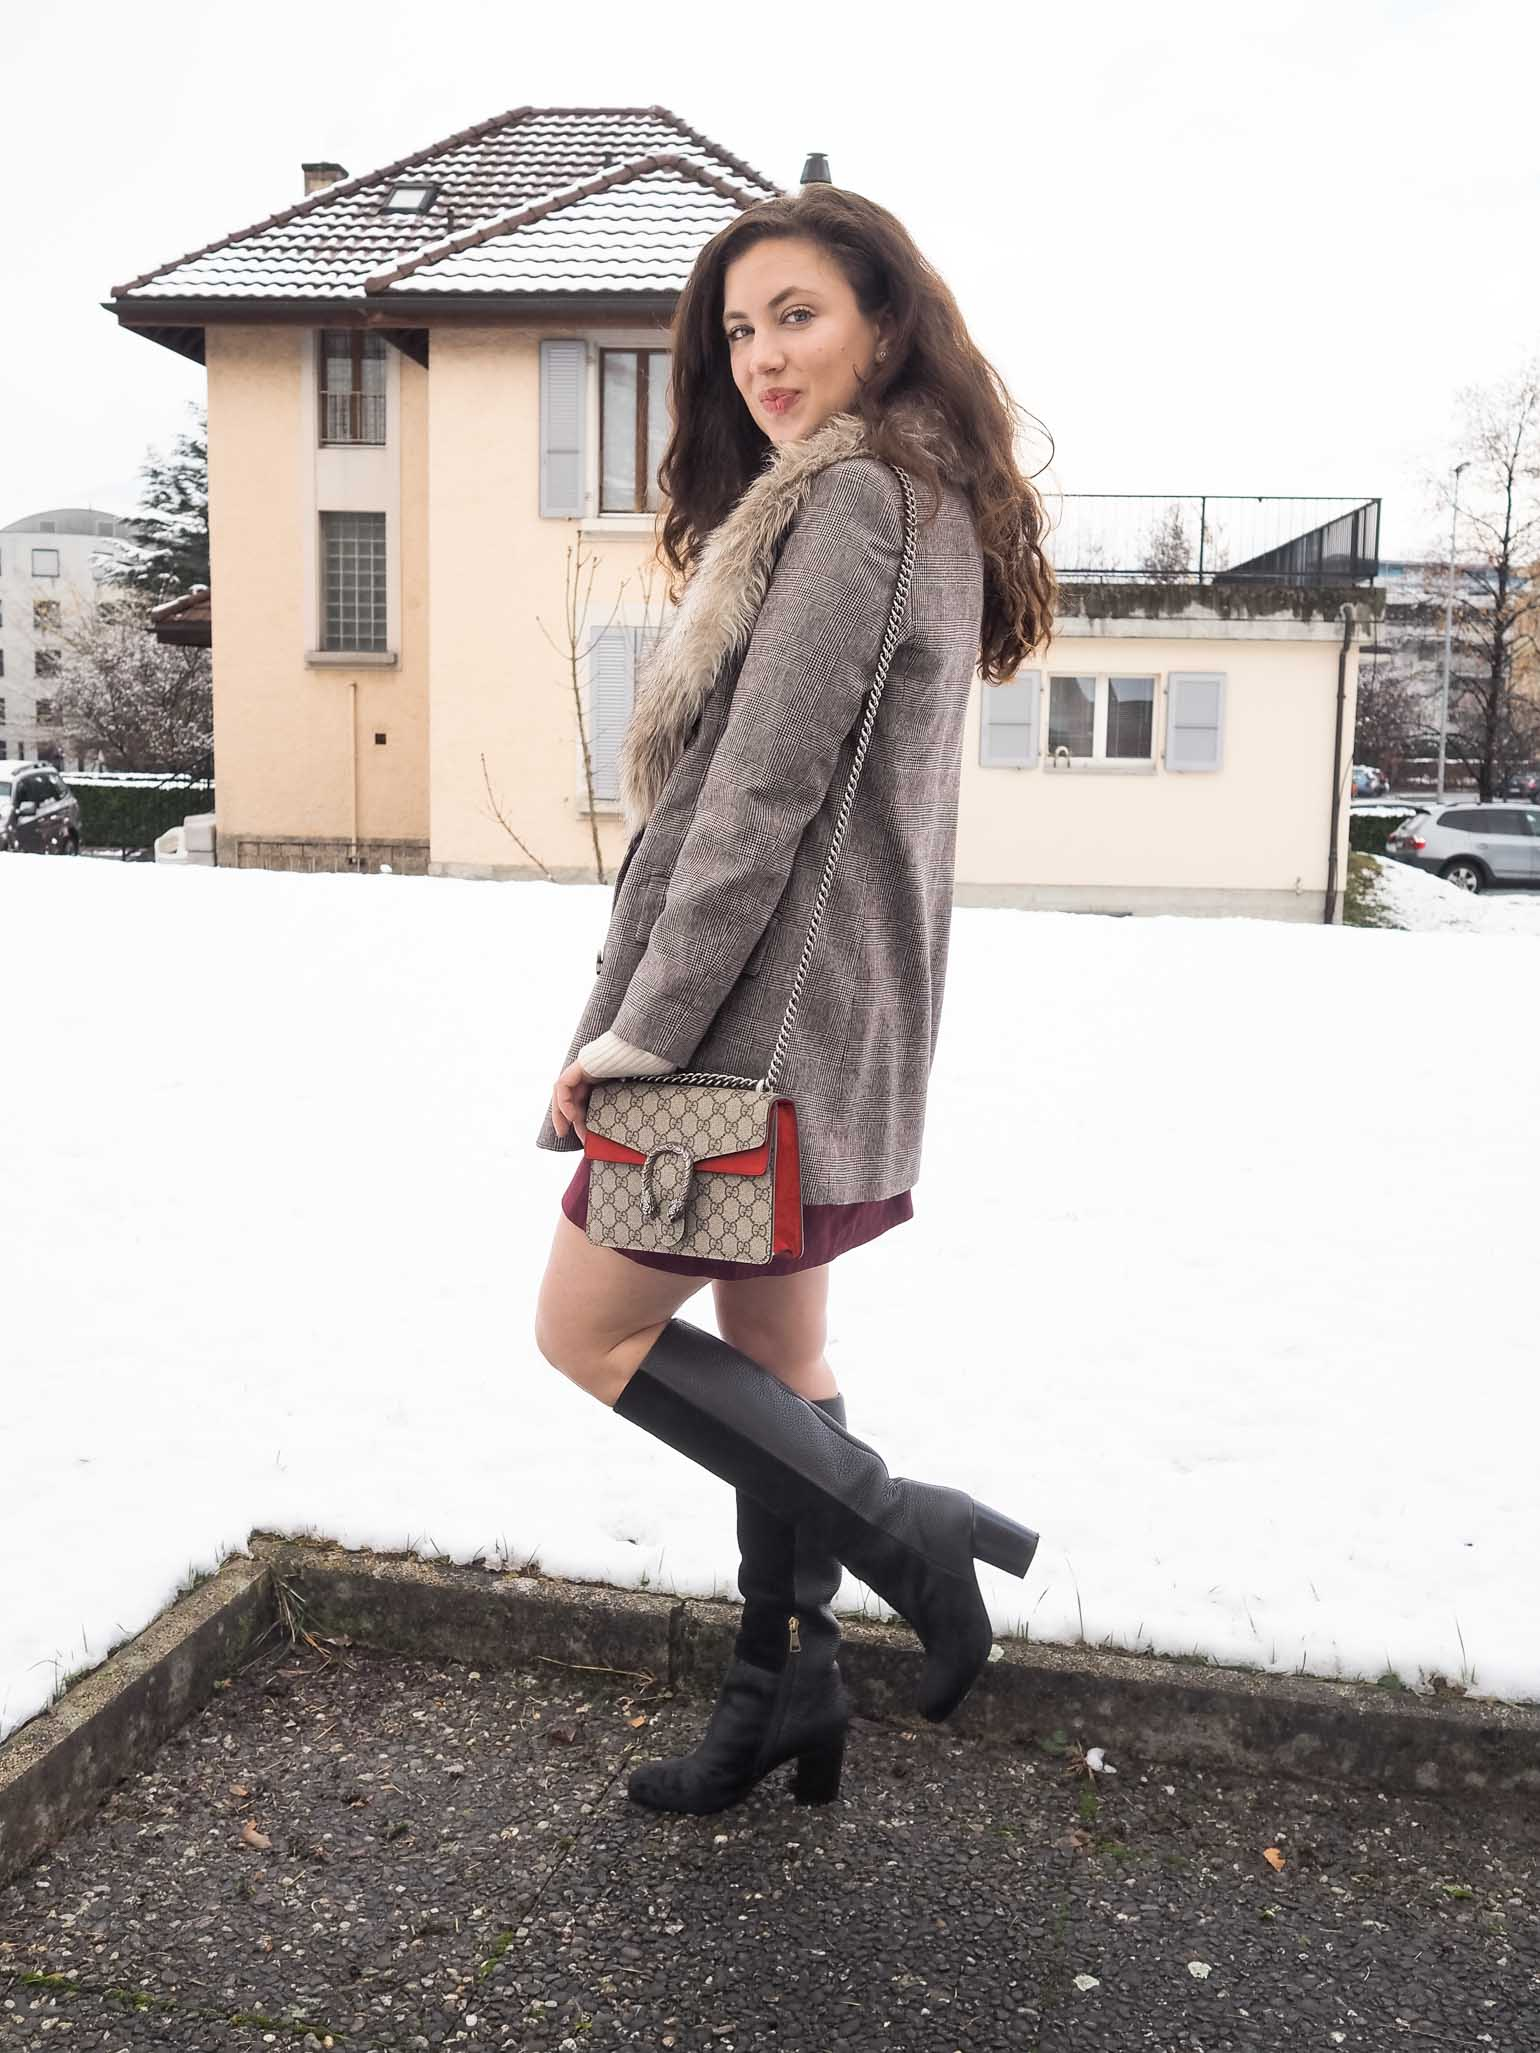 I'm in the Christmas Spirit: Plaid Holiday Look - The Brunette Nomad, Dallas fashion blogger